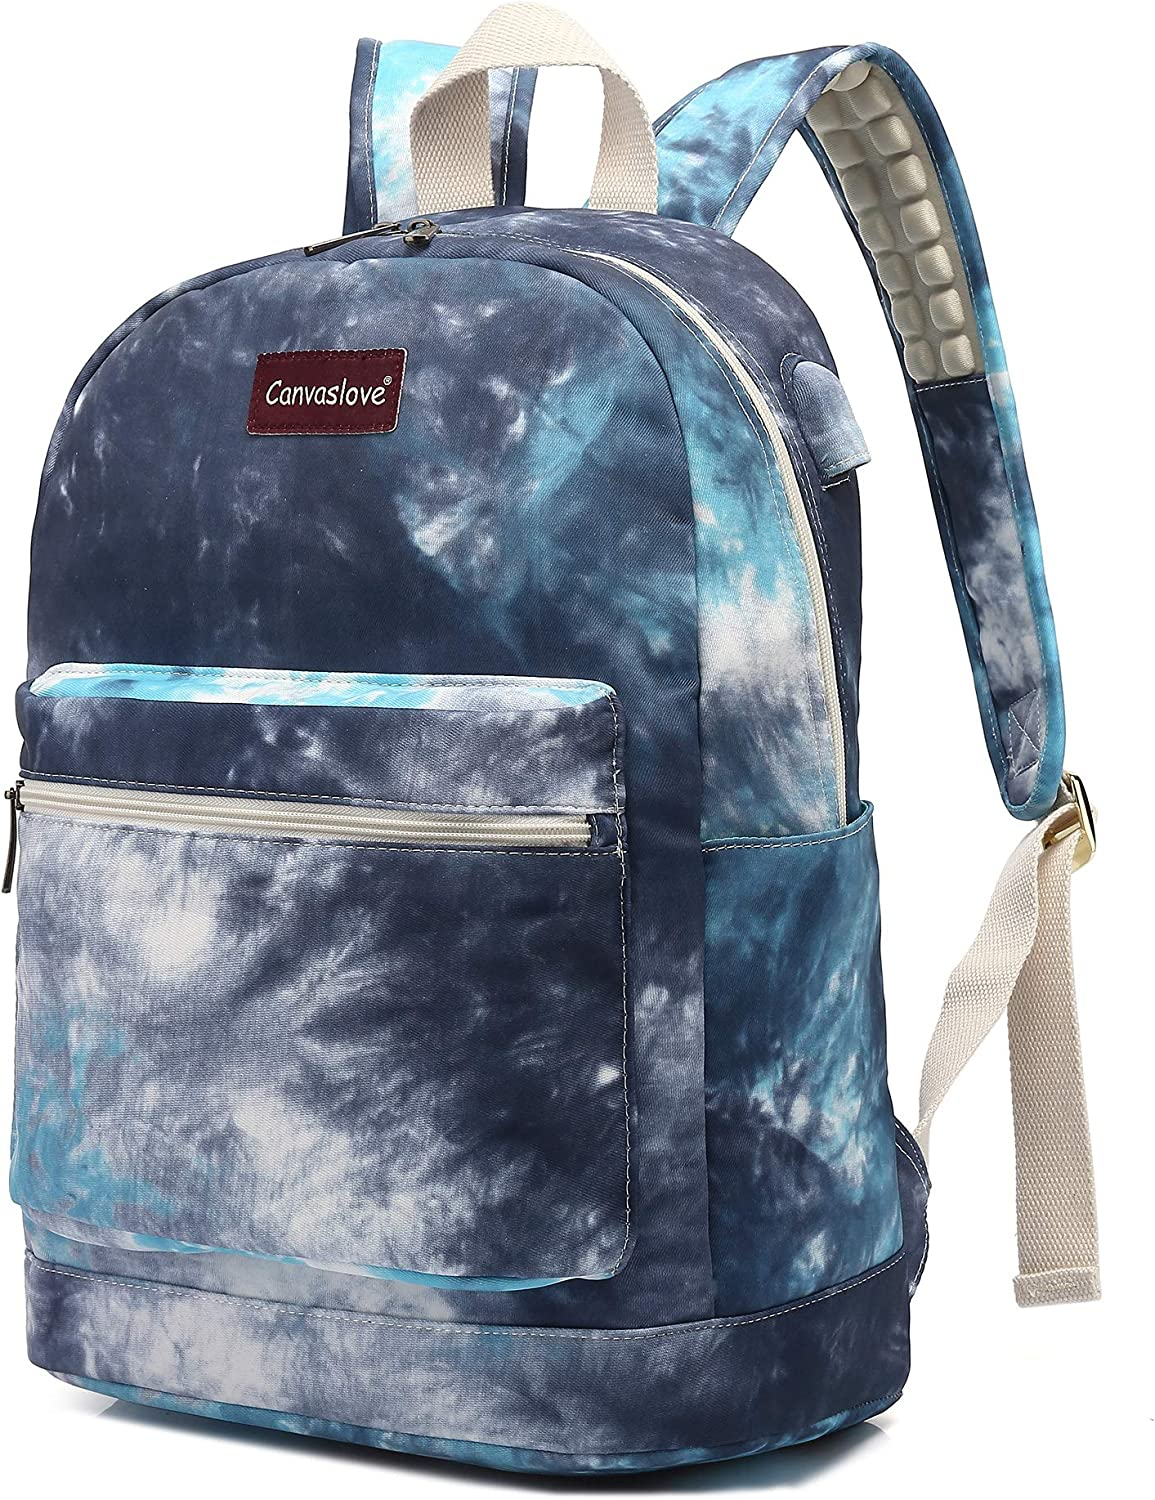 Canvaslove Watercolor Pattern Waterproof Laptop Backpack with USB Charging Port and Massage Cushion Straps for Laptop up to 15 inch Men Women Student Outdoor Travel Backpack